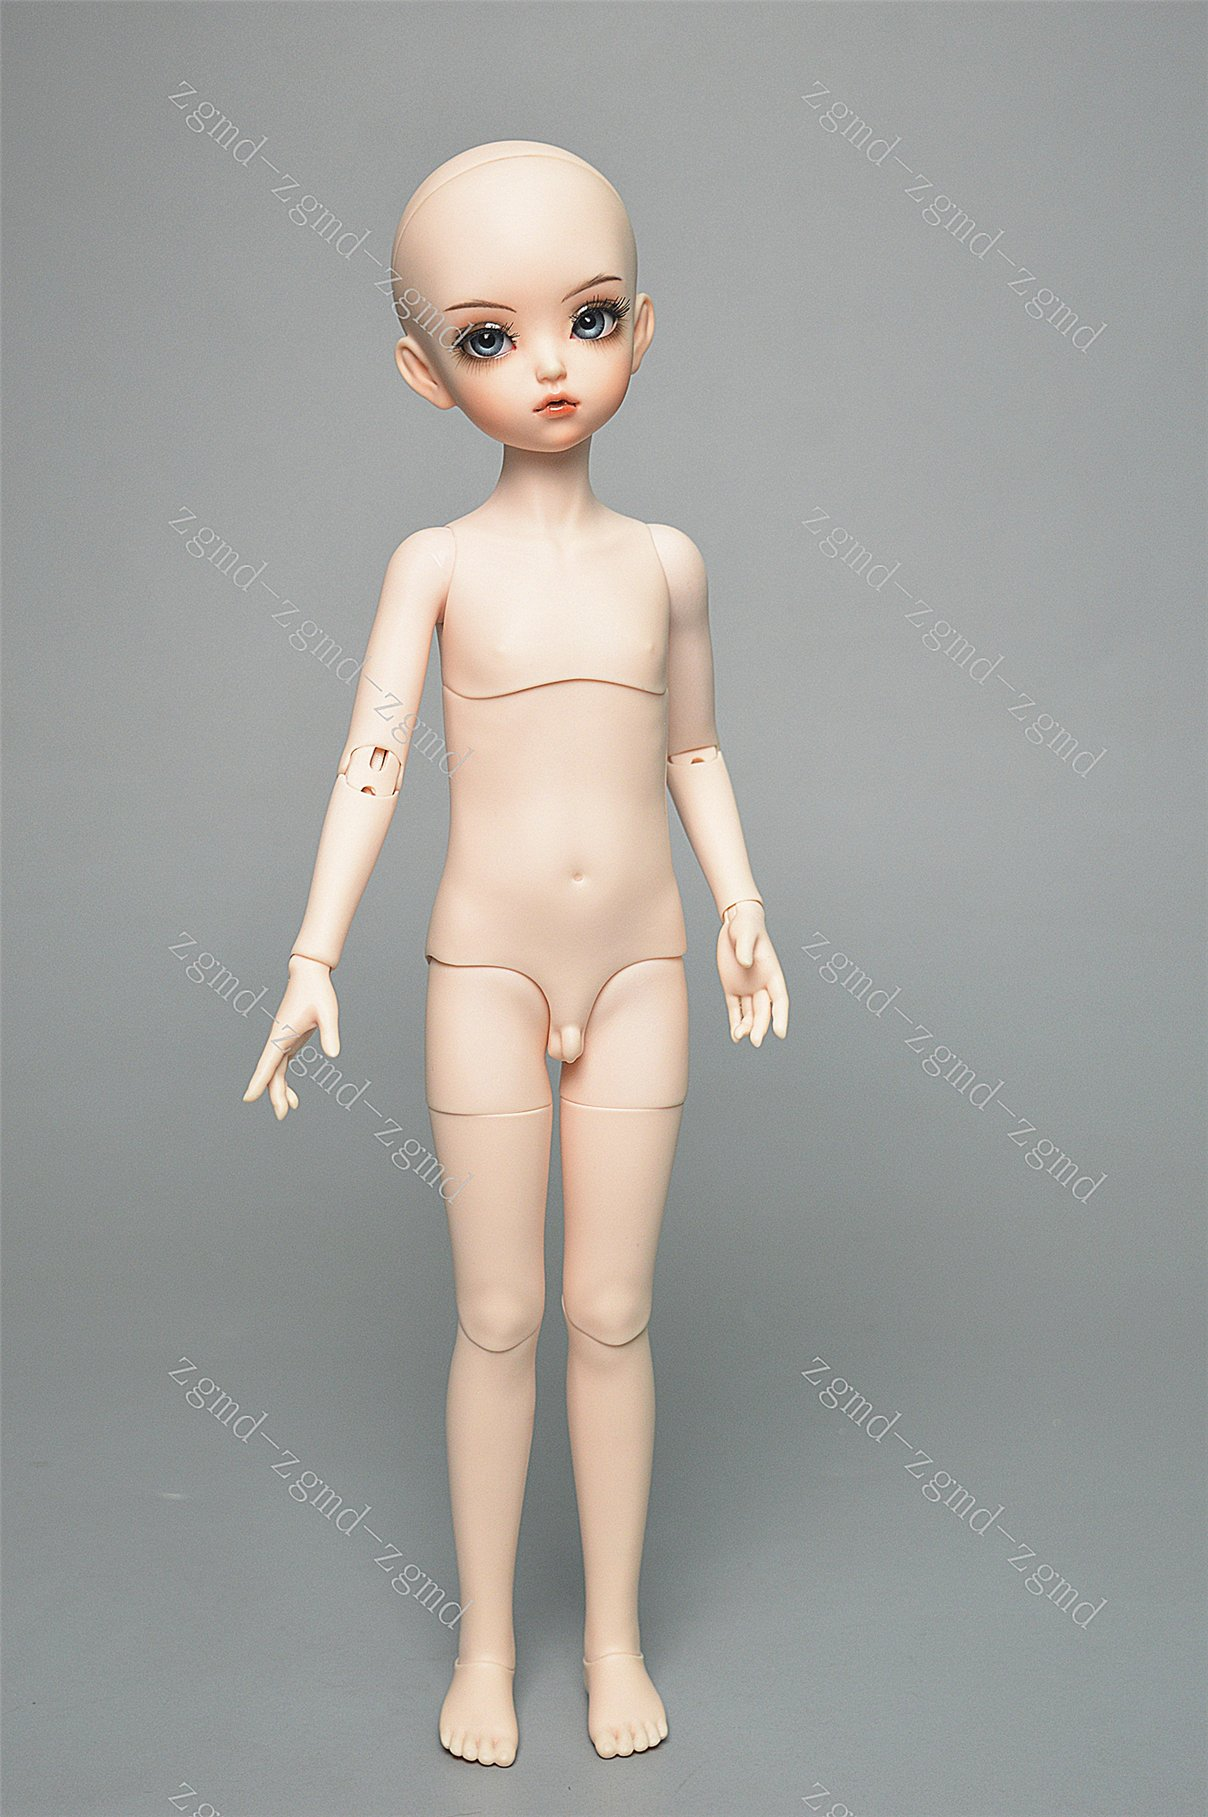 Zgmd 1/6 BJD Doll SD Doll Iren little boy's body and head by Zgmd (Image #1)